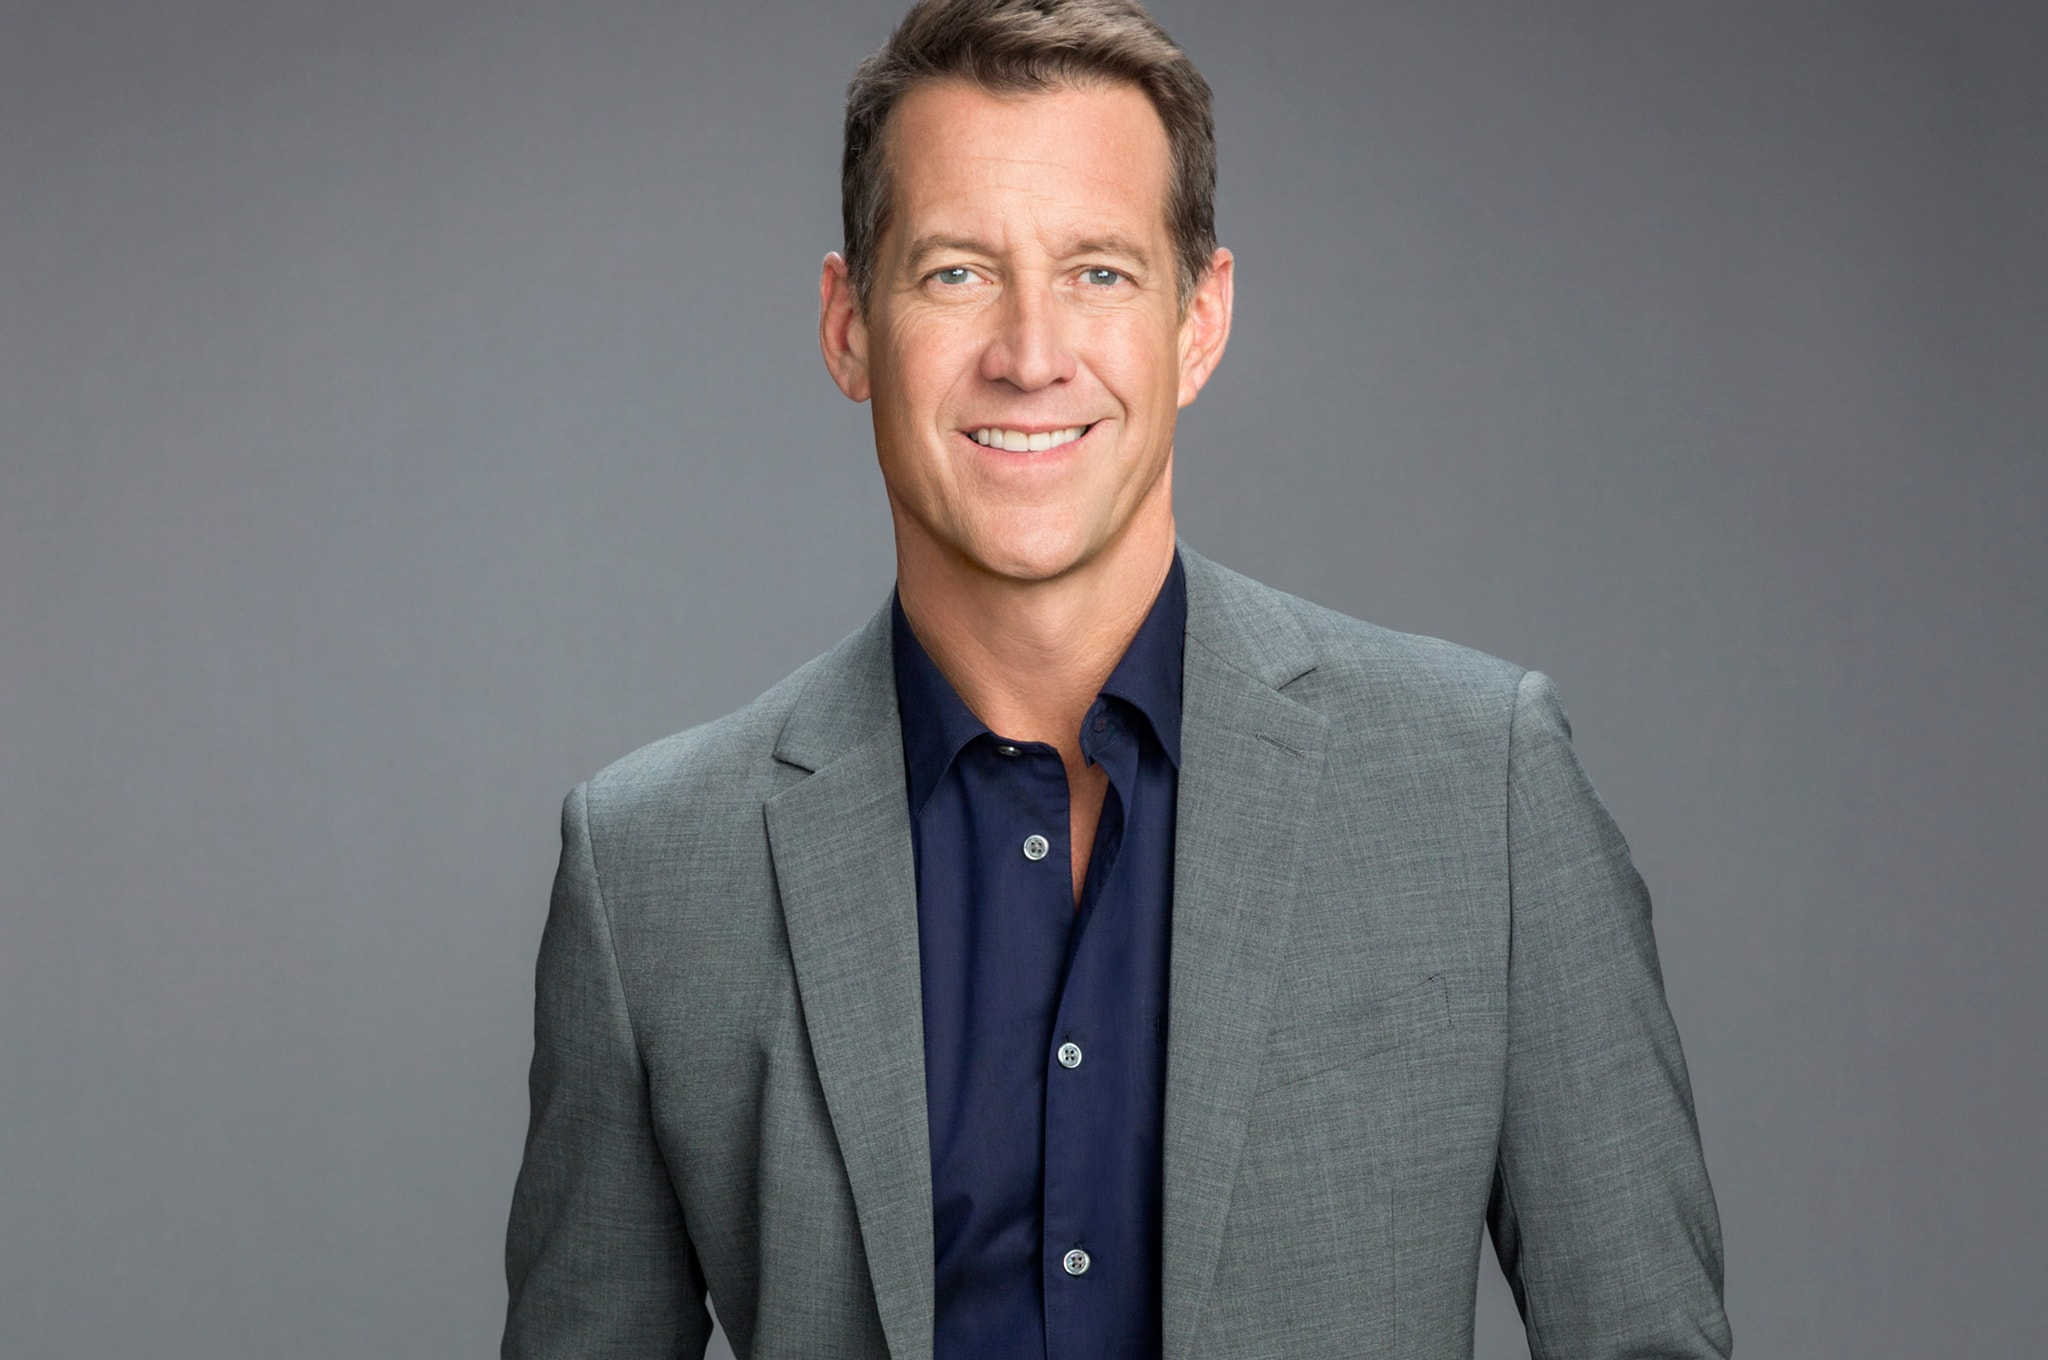 james denton 4k widescreen desktop wallpaper 1267